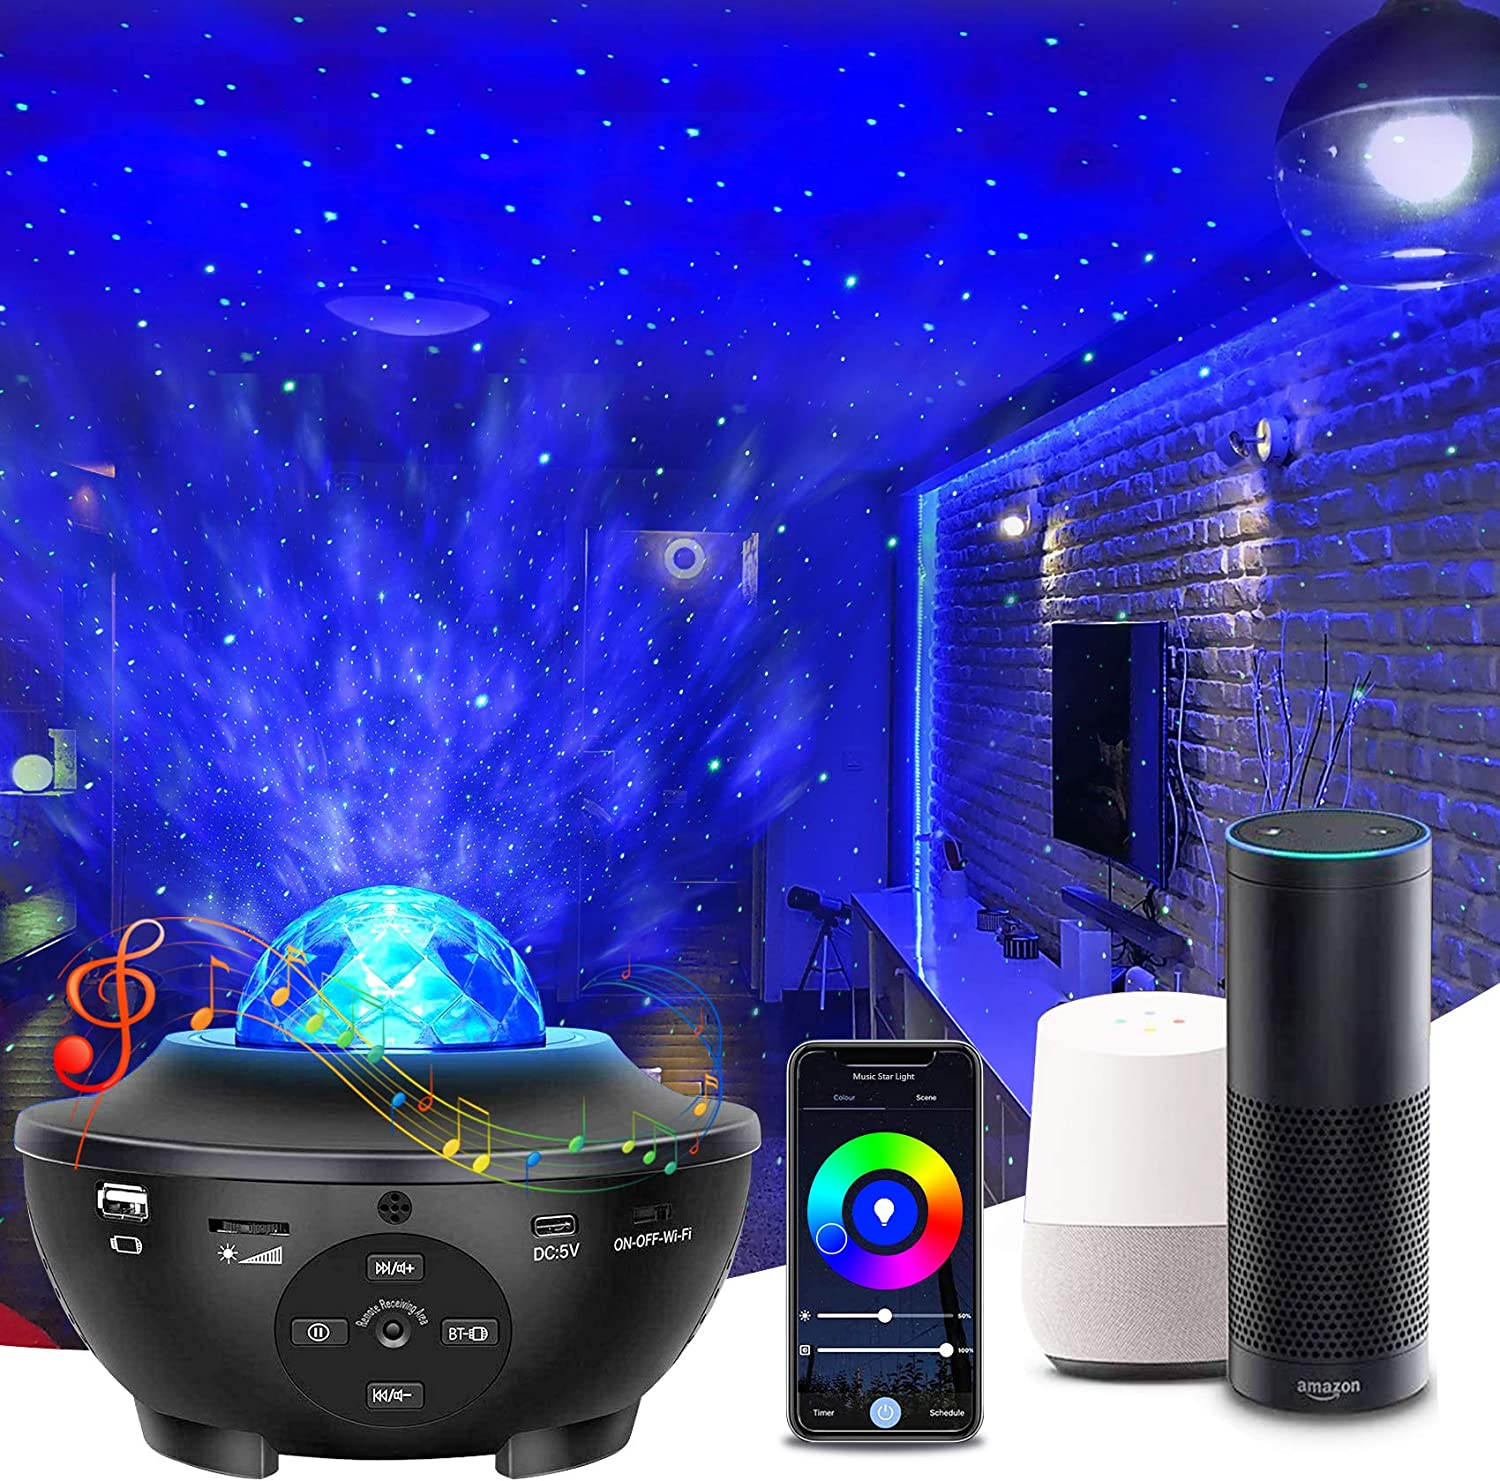 Star Projector Galaxy Projector, Elec3 Smart Galaxy Light Works with Alexa, Google Assistant Music Speaker Remote Control Night Light Projector for Kids Adults Bedroom Game Room Home Theatre Decor